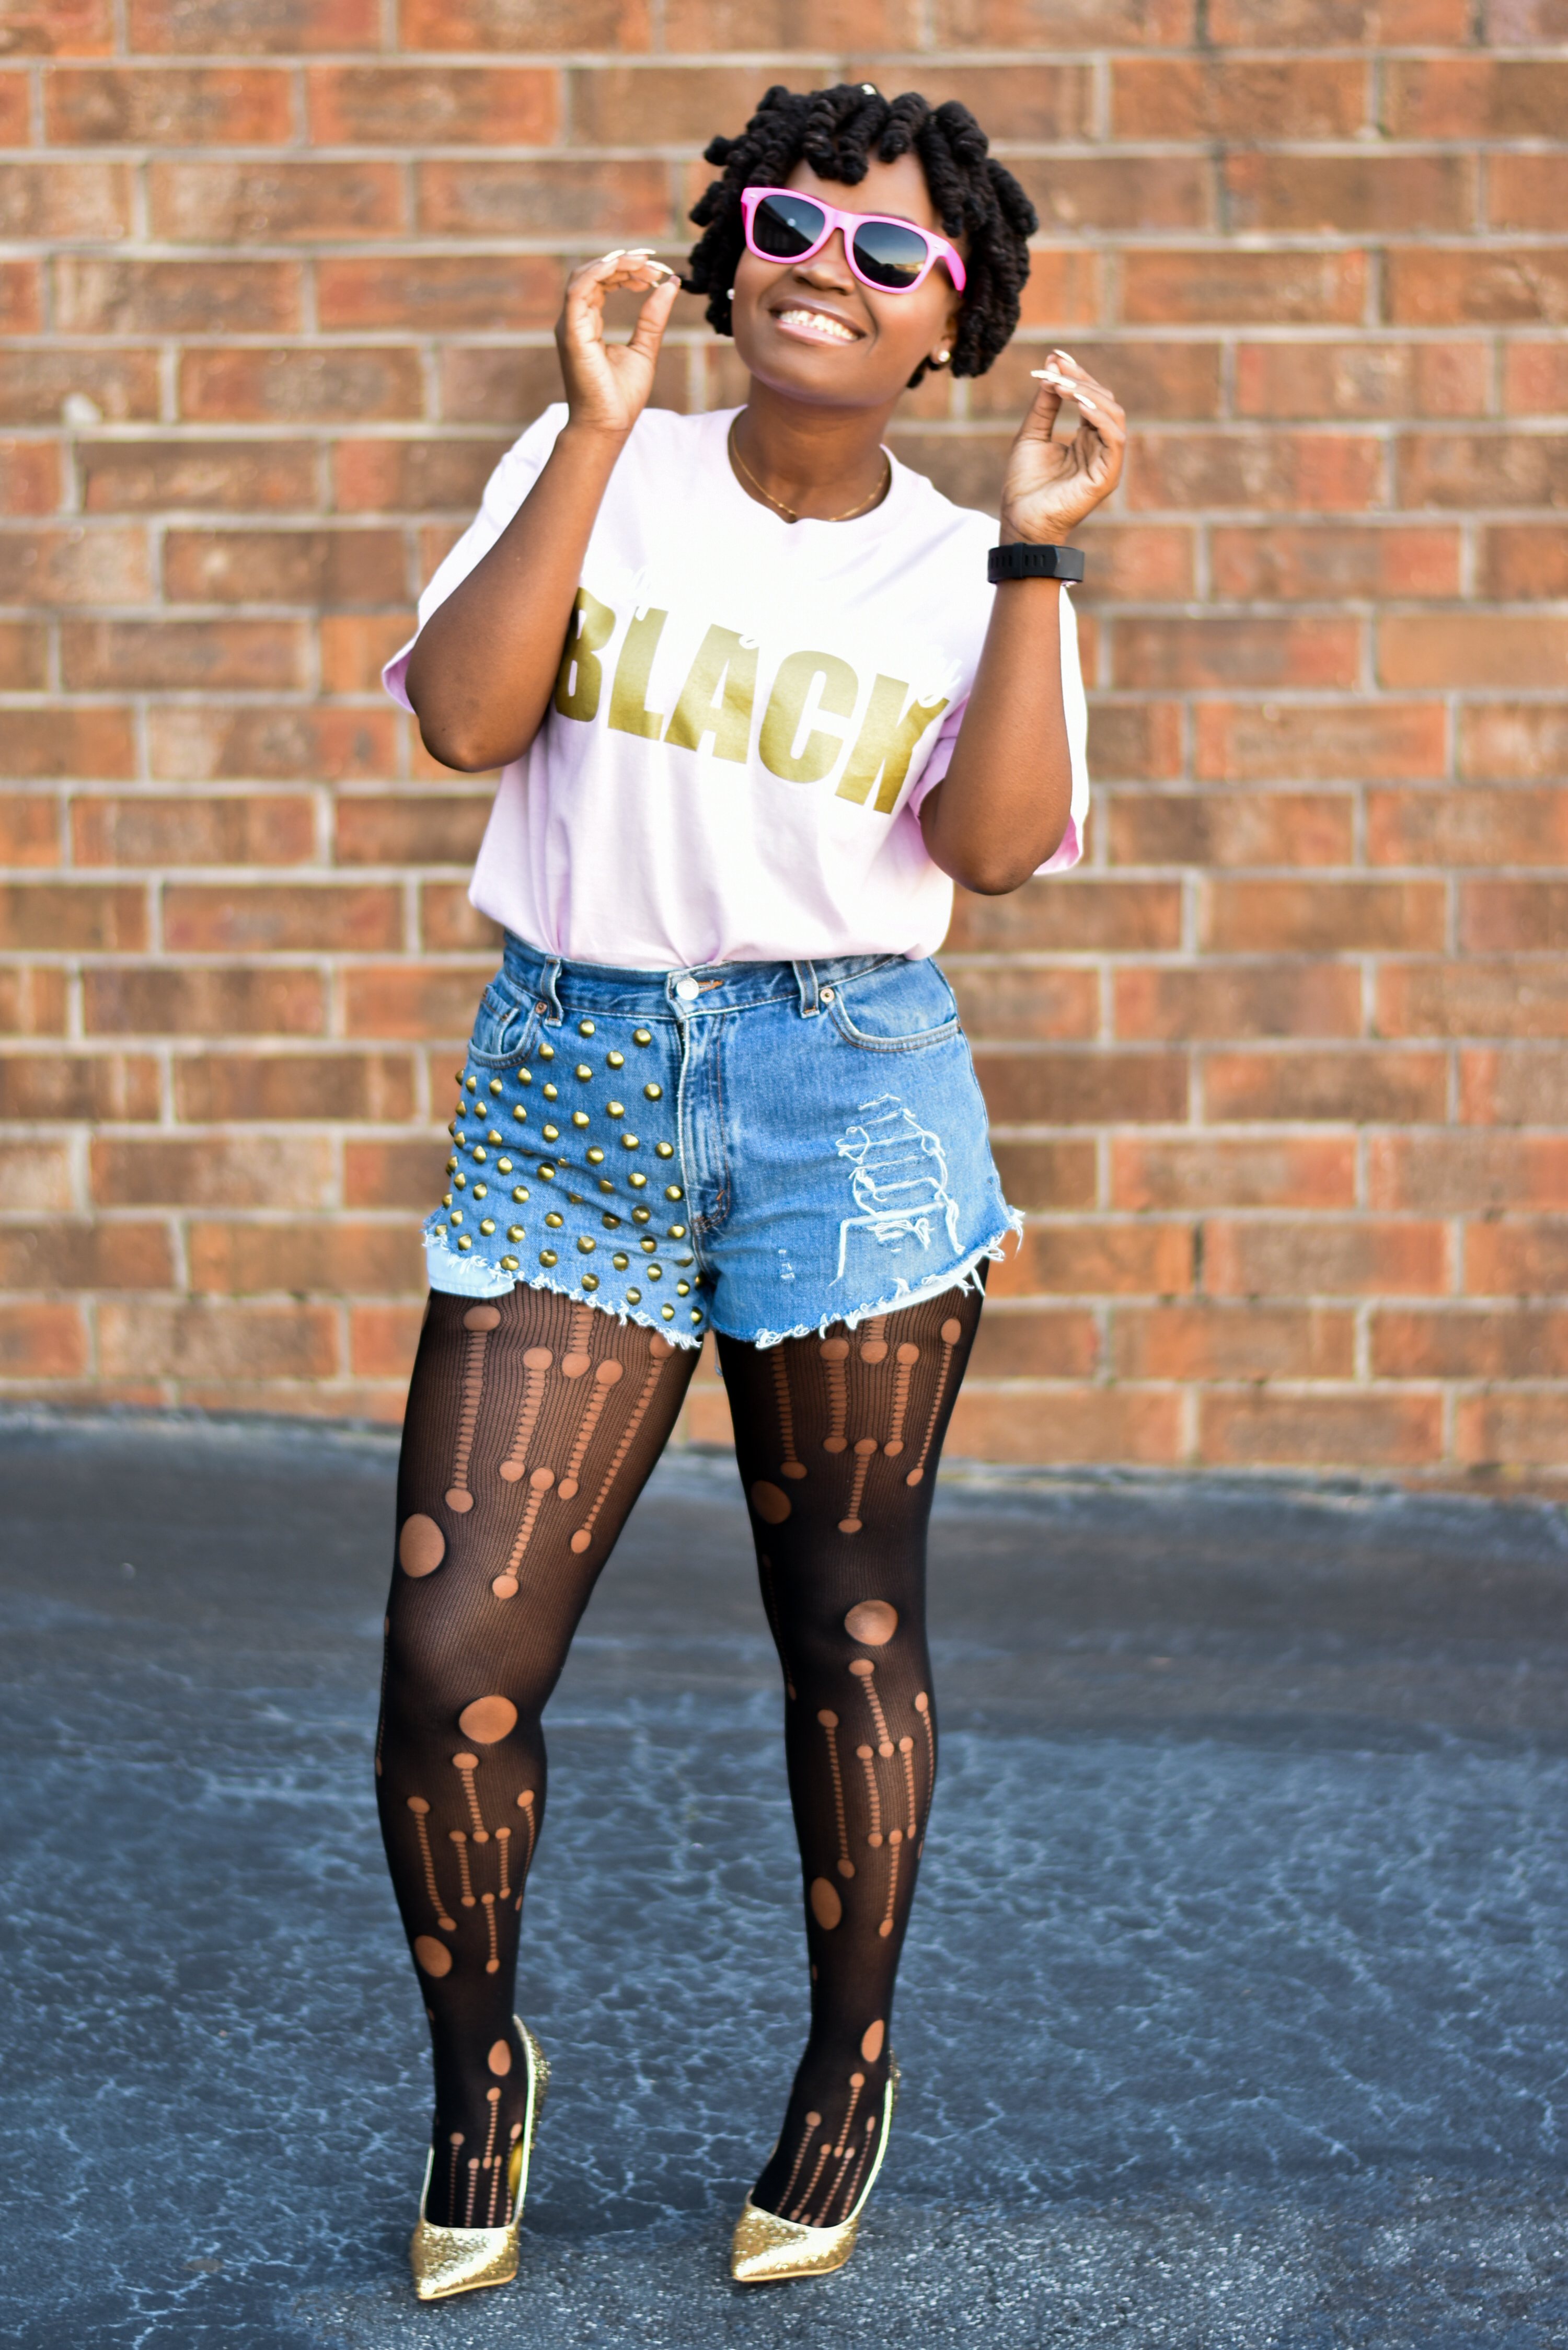 Holed Stockings Grab My Pink S Trip Shades And I Was Instantly Unapologetically Black Barbie Think The Look Is Super Cute Hope You Do Too